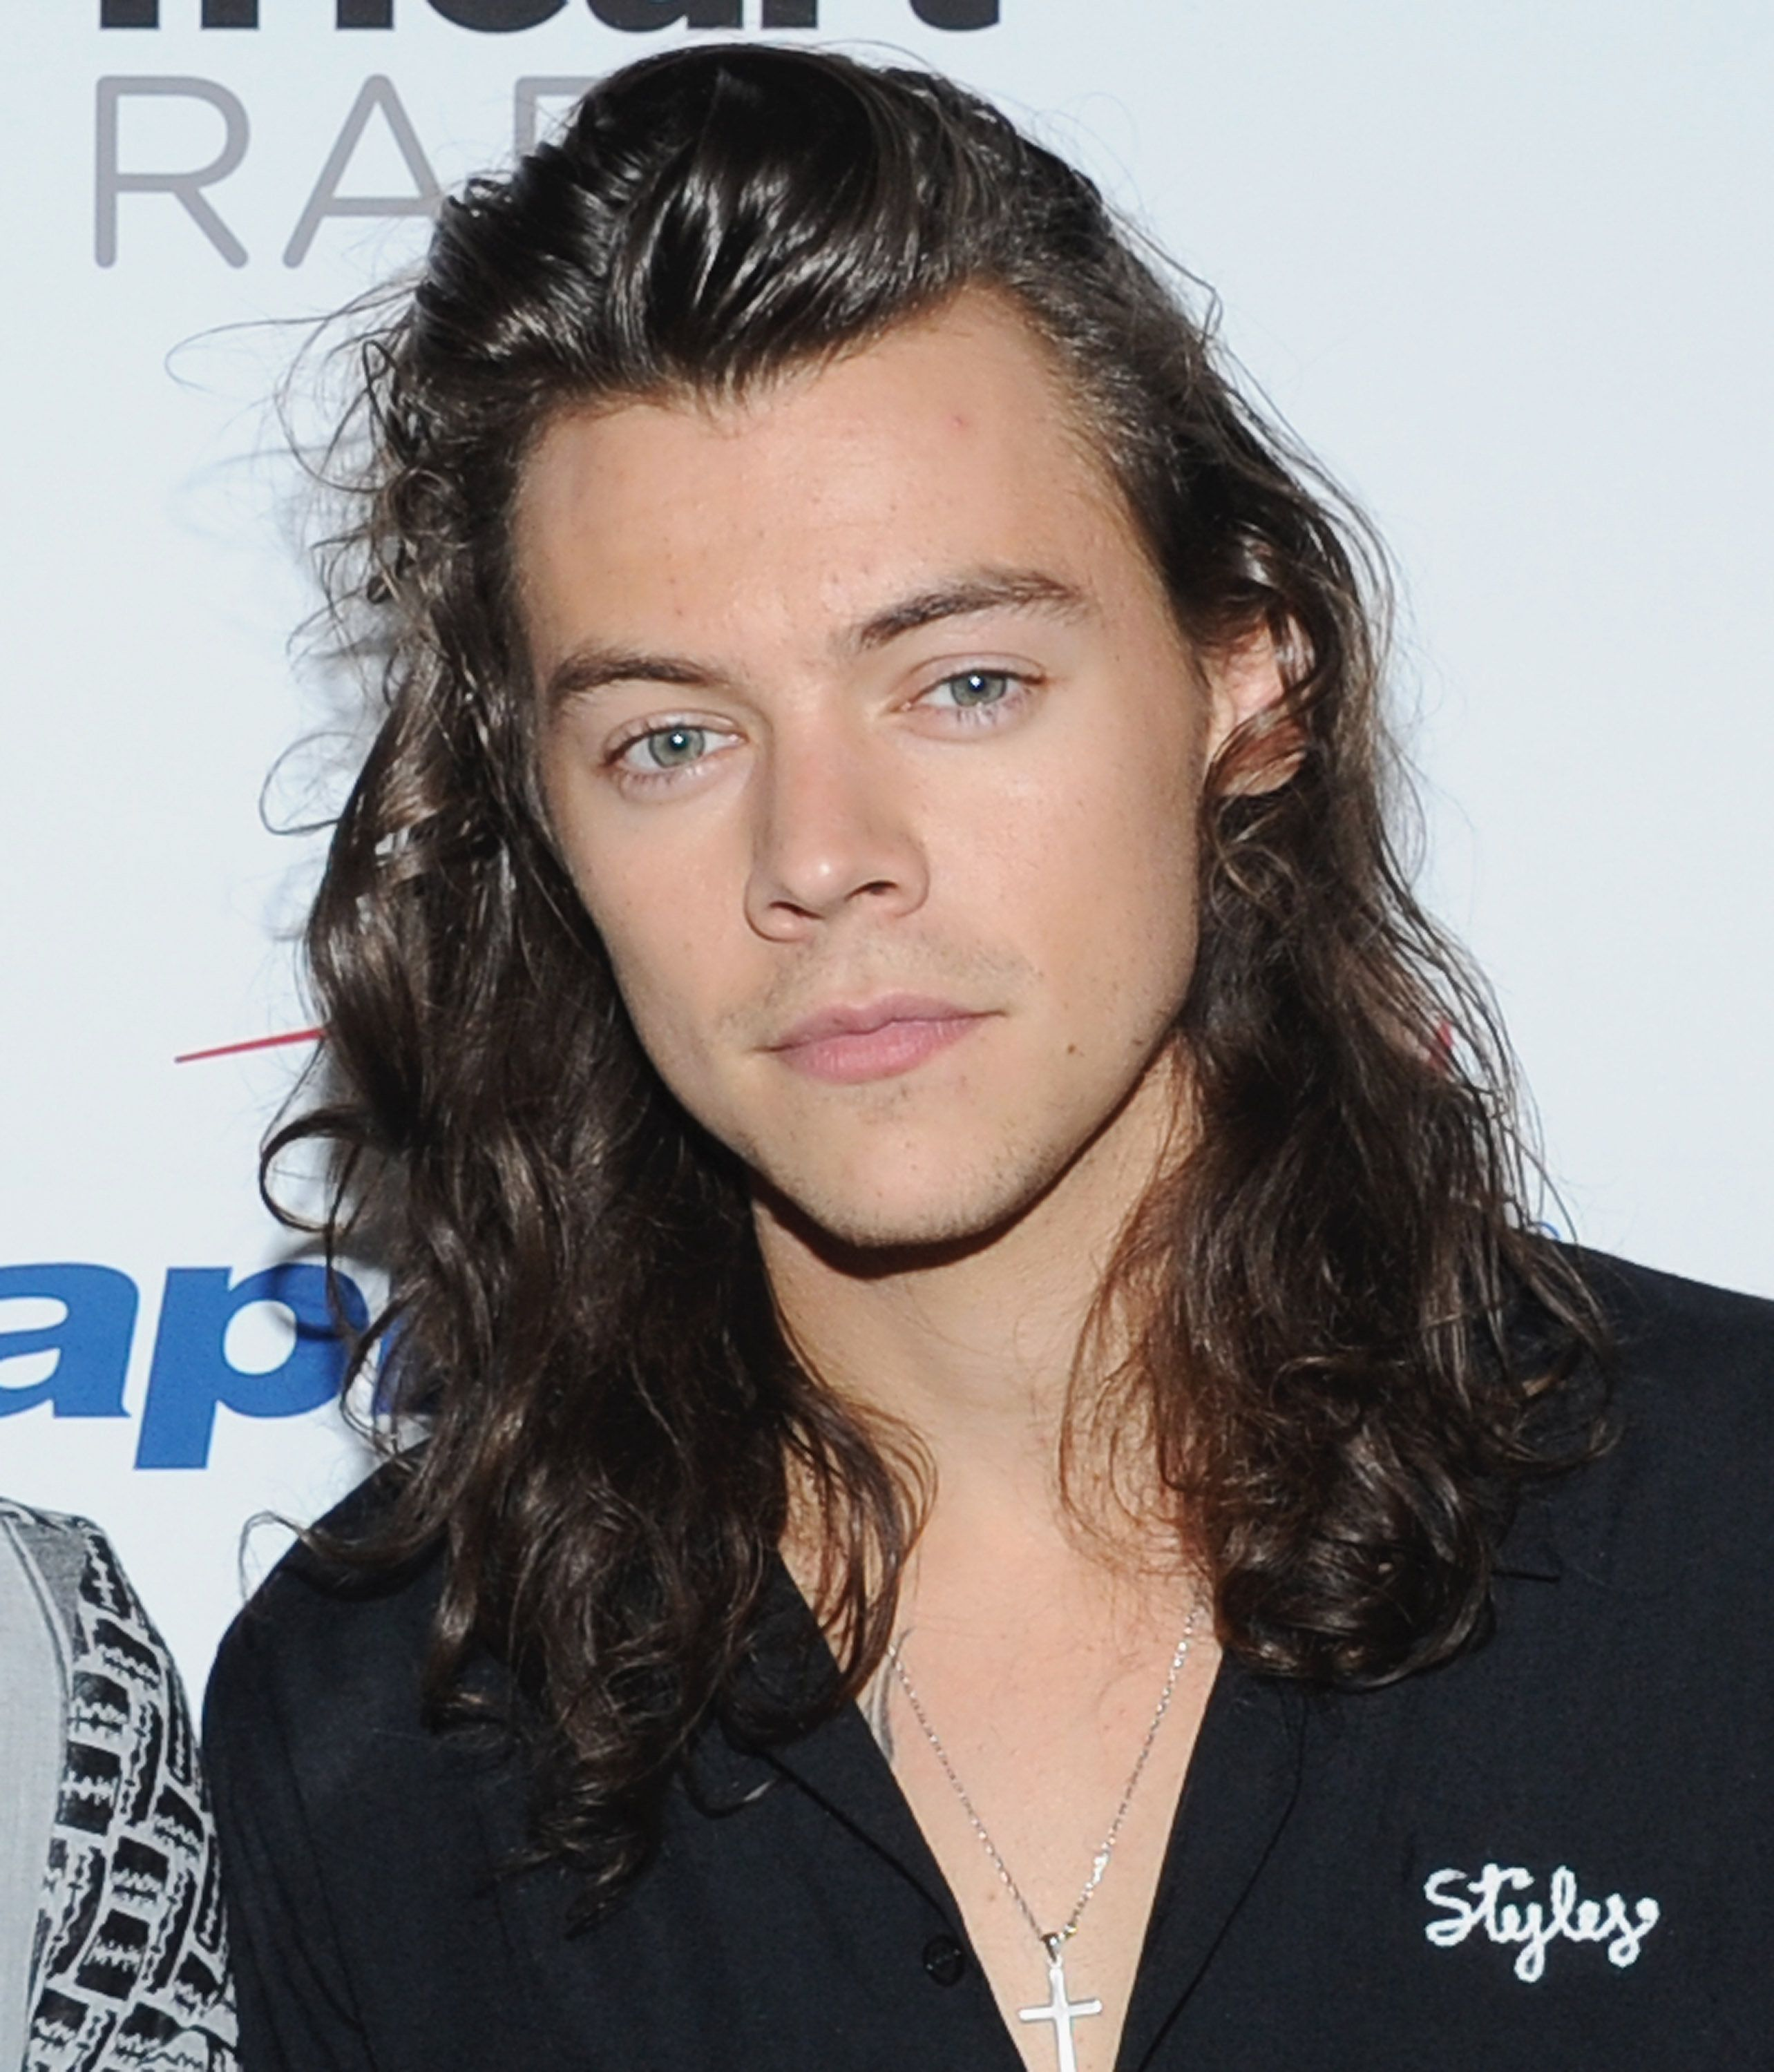 Harry Styles Bags Impressive Film Role For Acting